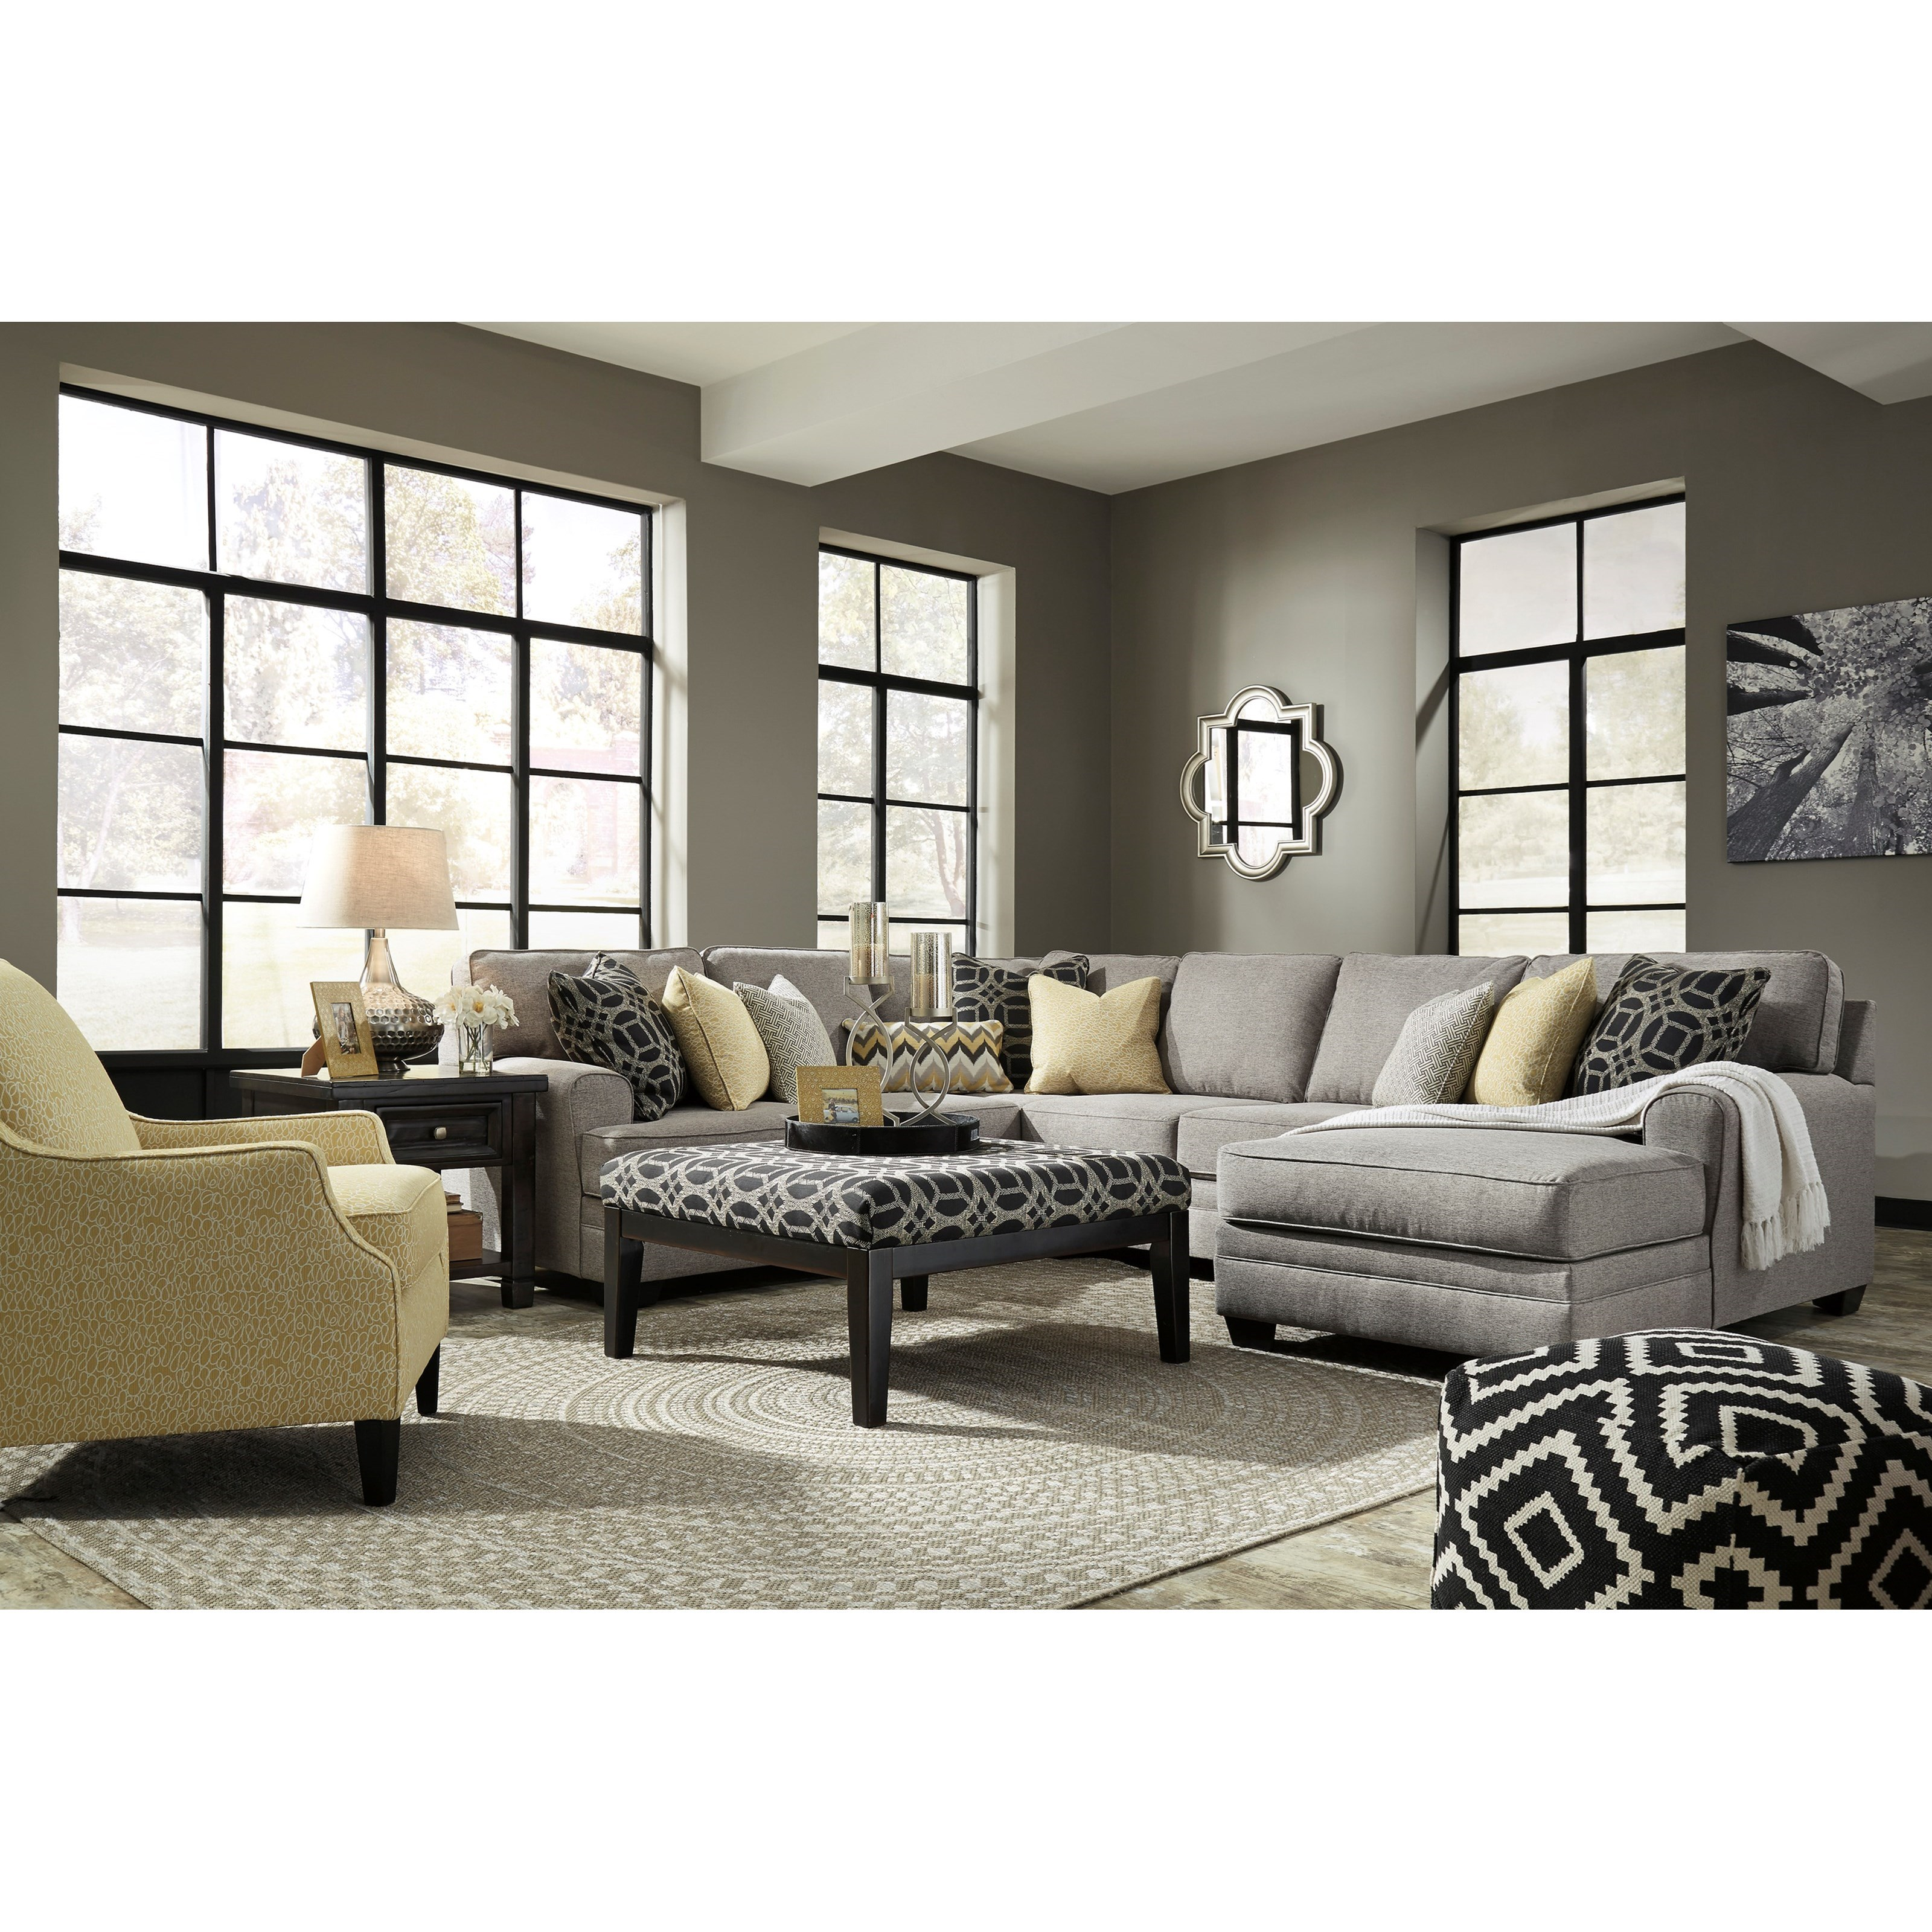 Benchcraft cresson stationary living room group john v for Living room furniture groups